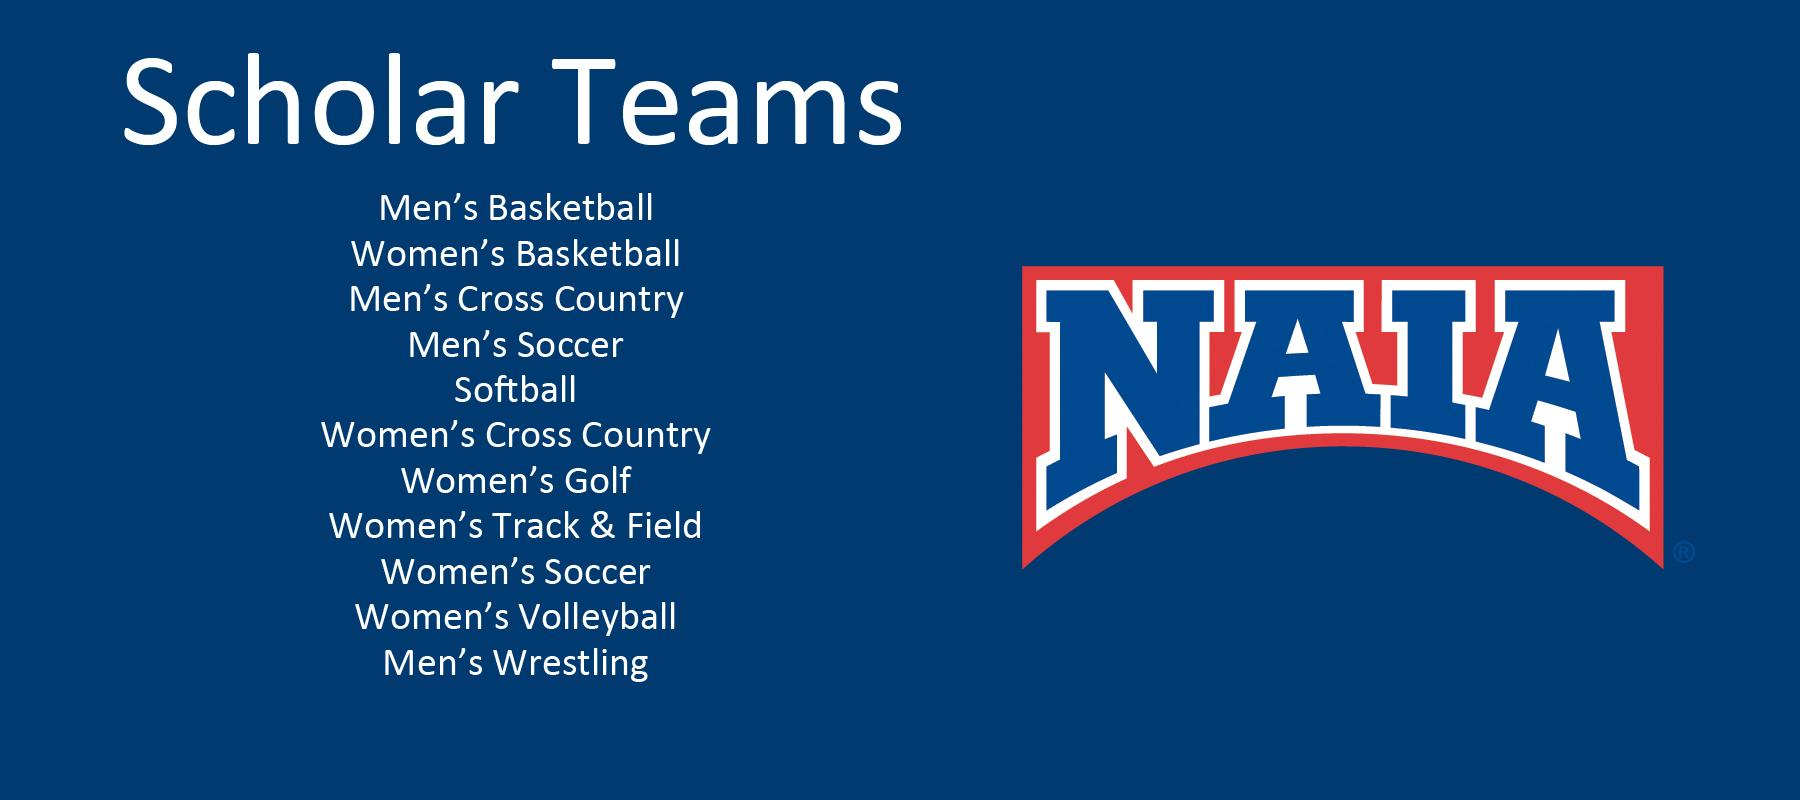 2016-17 NAIA Scholar Teams Announced